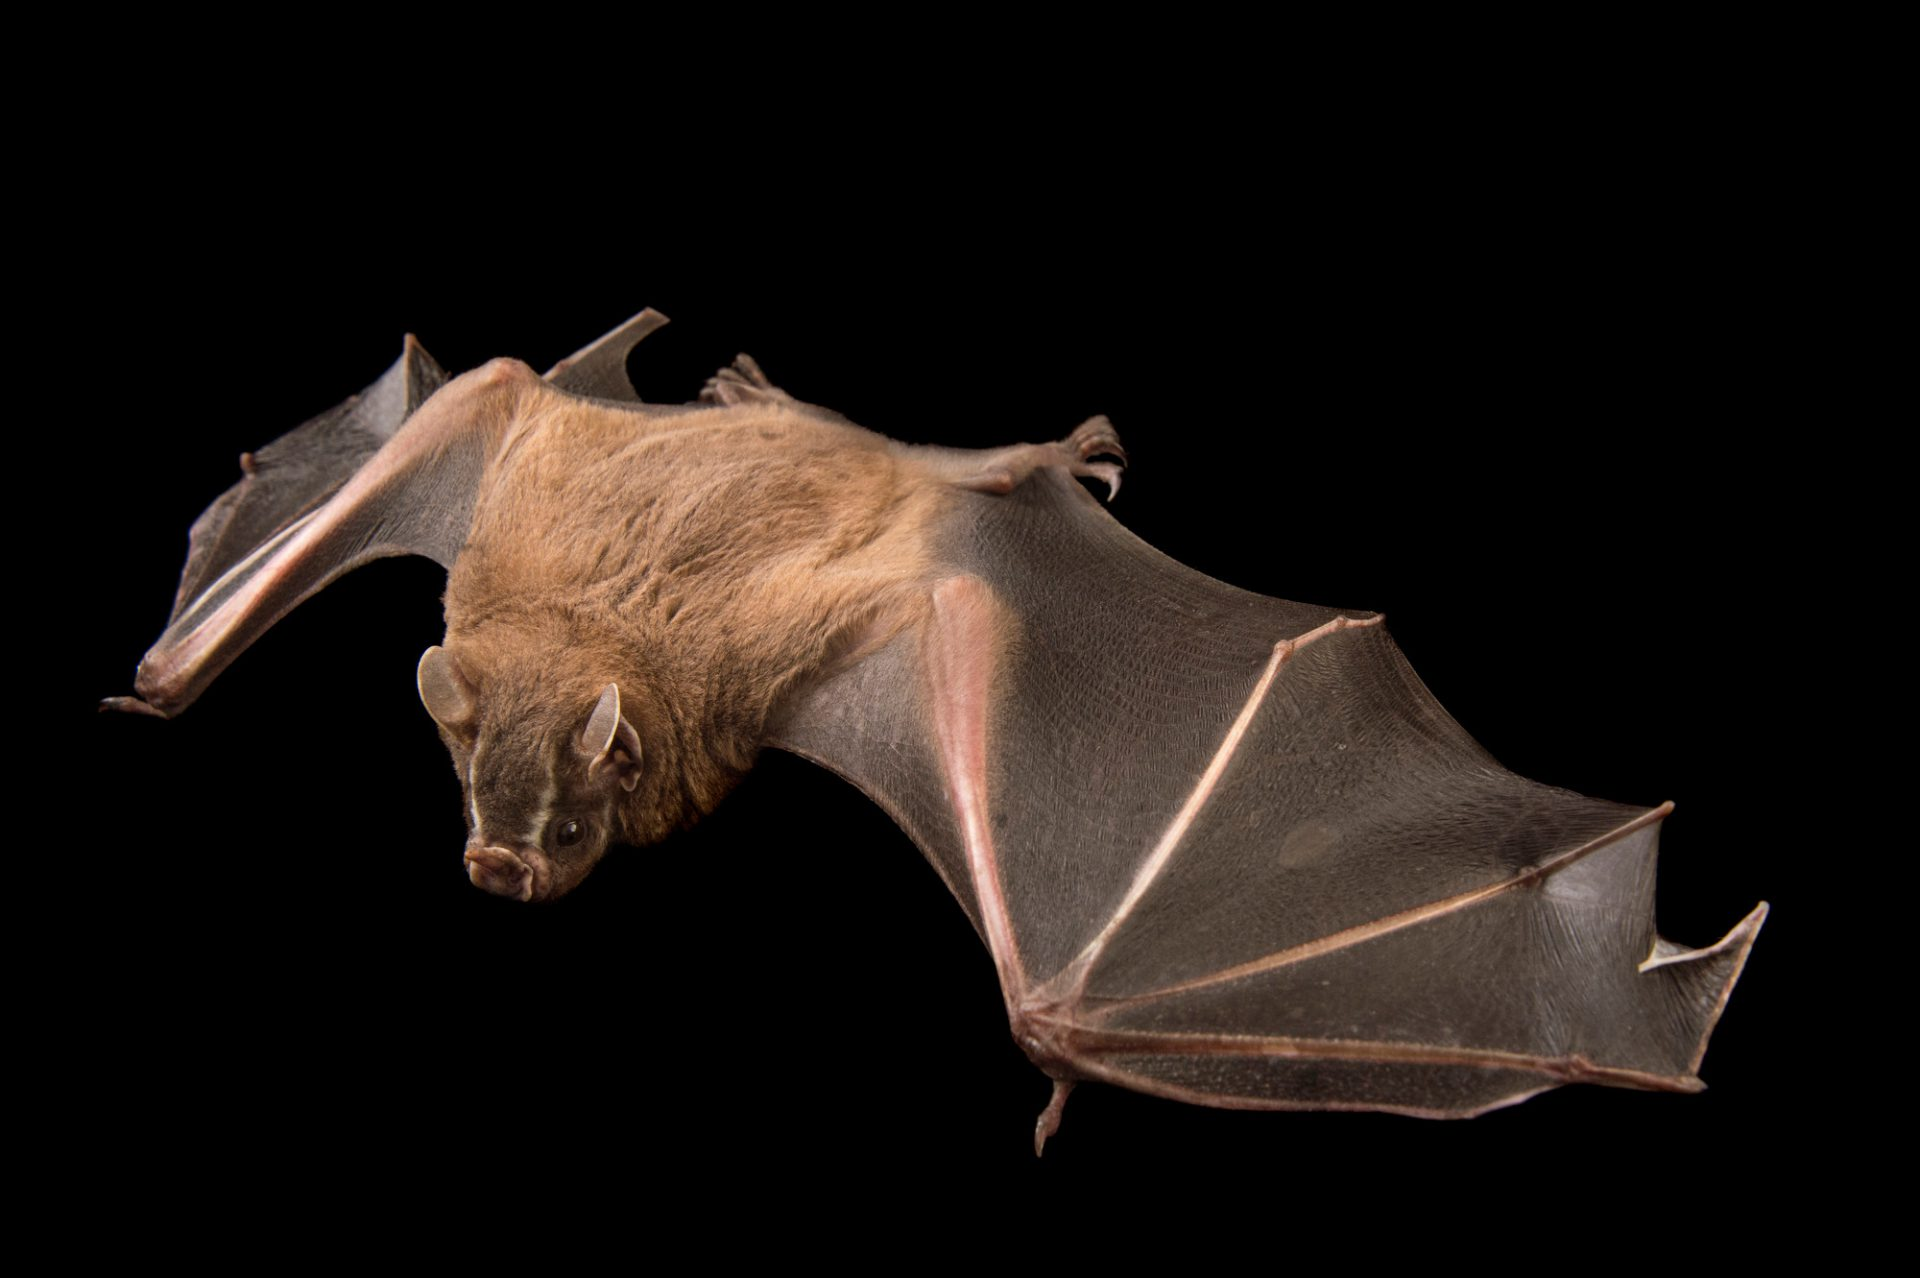 Picture of a greater fruit-eating bat (Artibeus lituratus) at the Lubee Bat Conservancy in Gainesville, Florida.